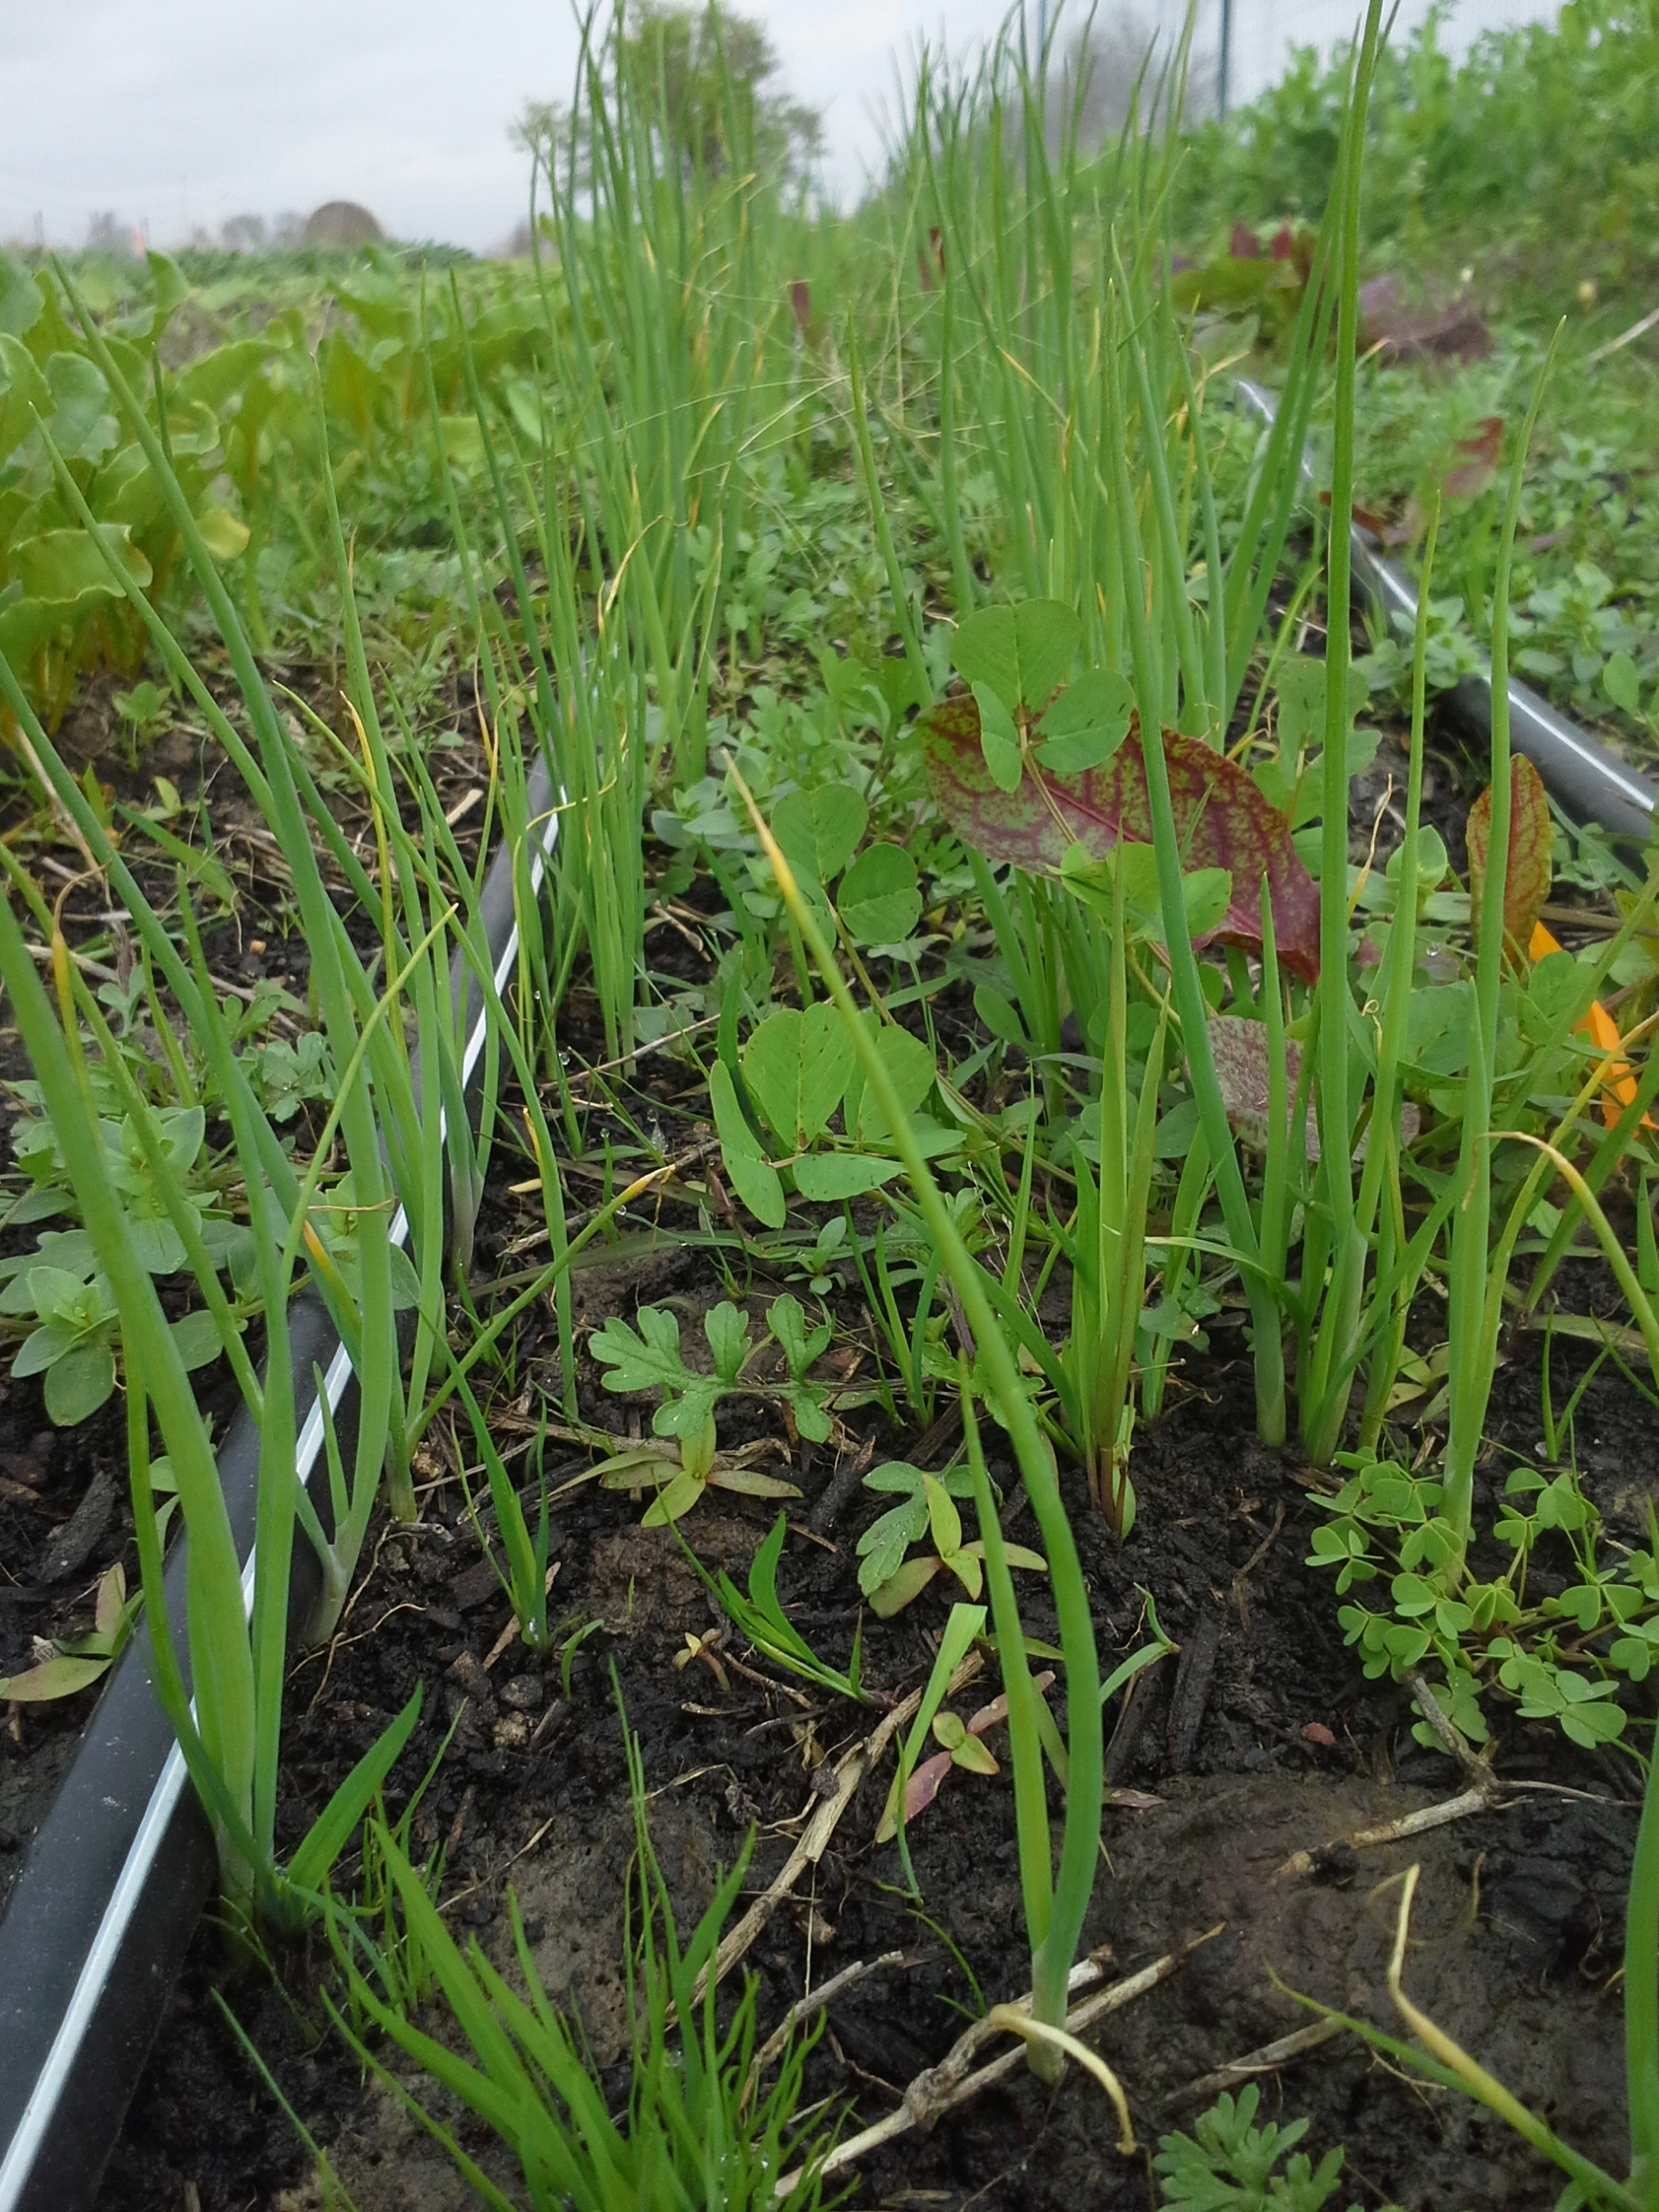 These scallions needed to be weeded much earlier than they were. Of course, we also needed to plant nearly 1,000 plants. They'l be fiiine.